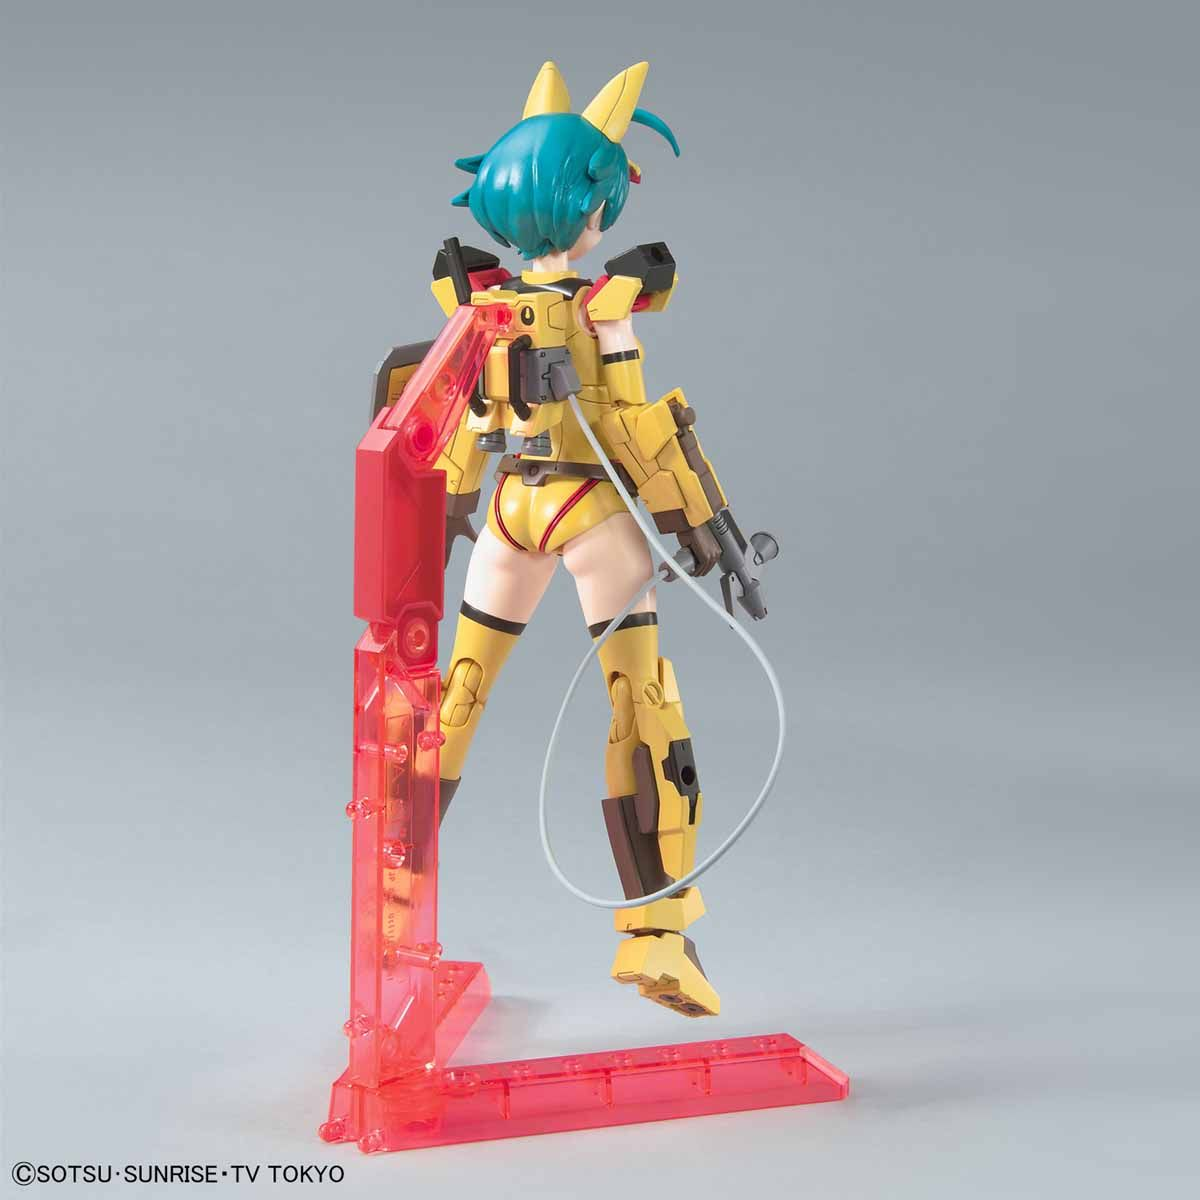 Figure-rise Standard BUILD DIVERS ダイバーナミ 07